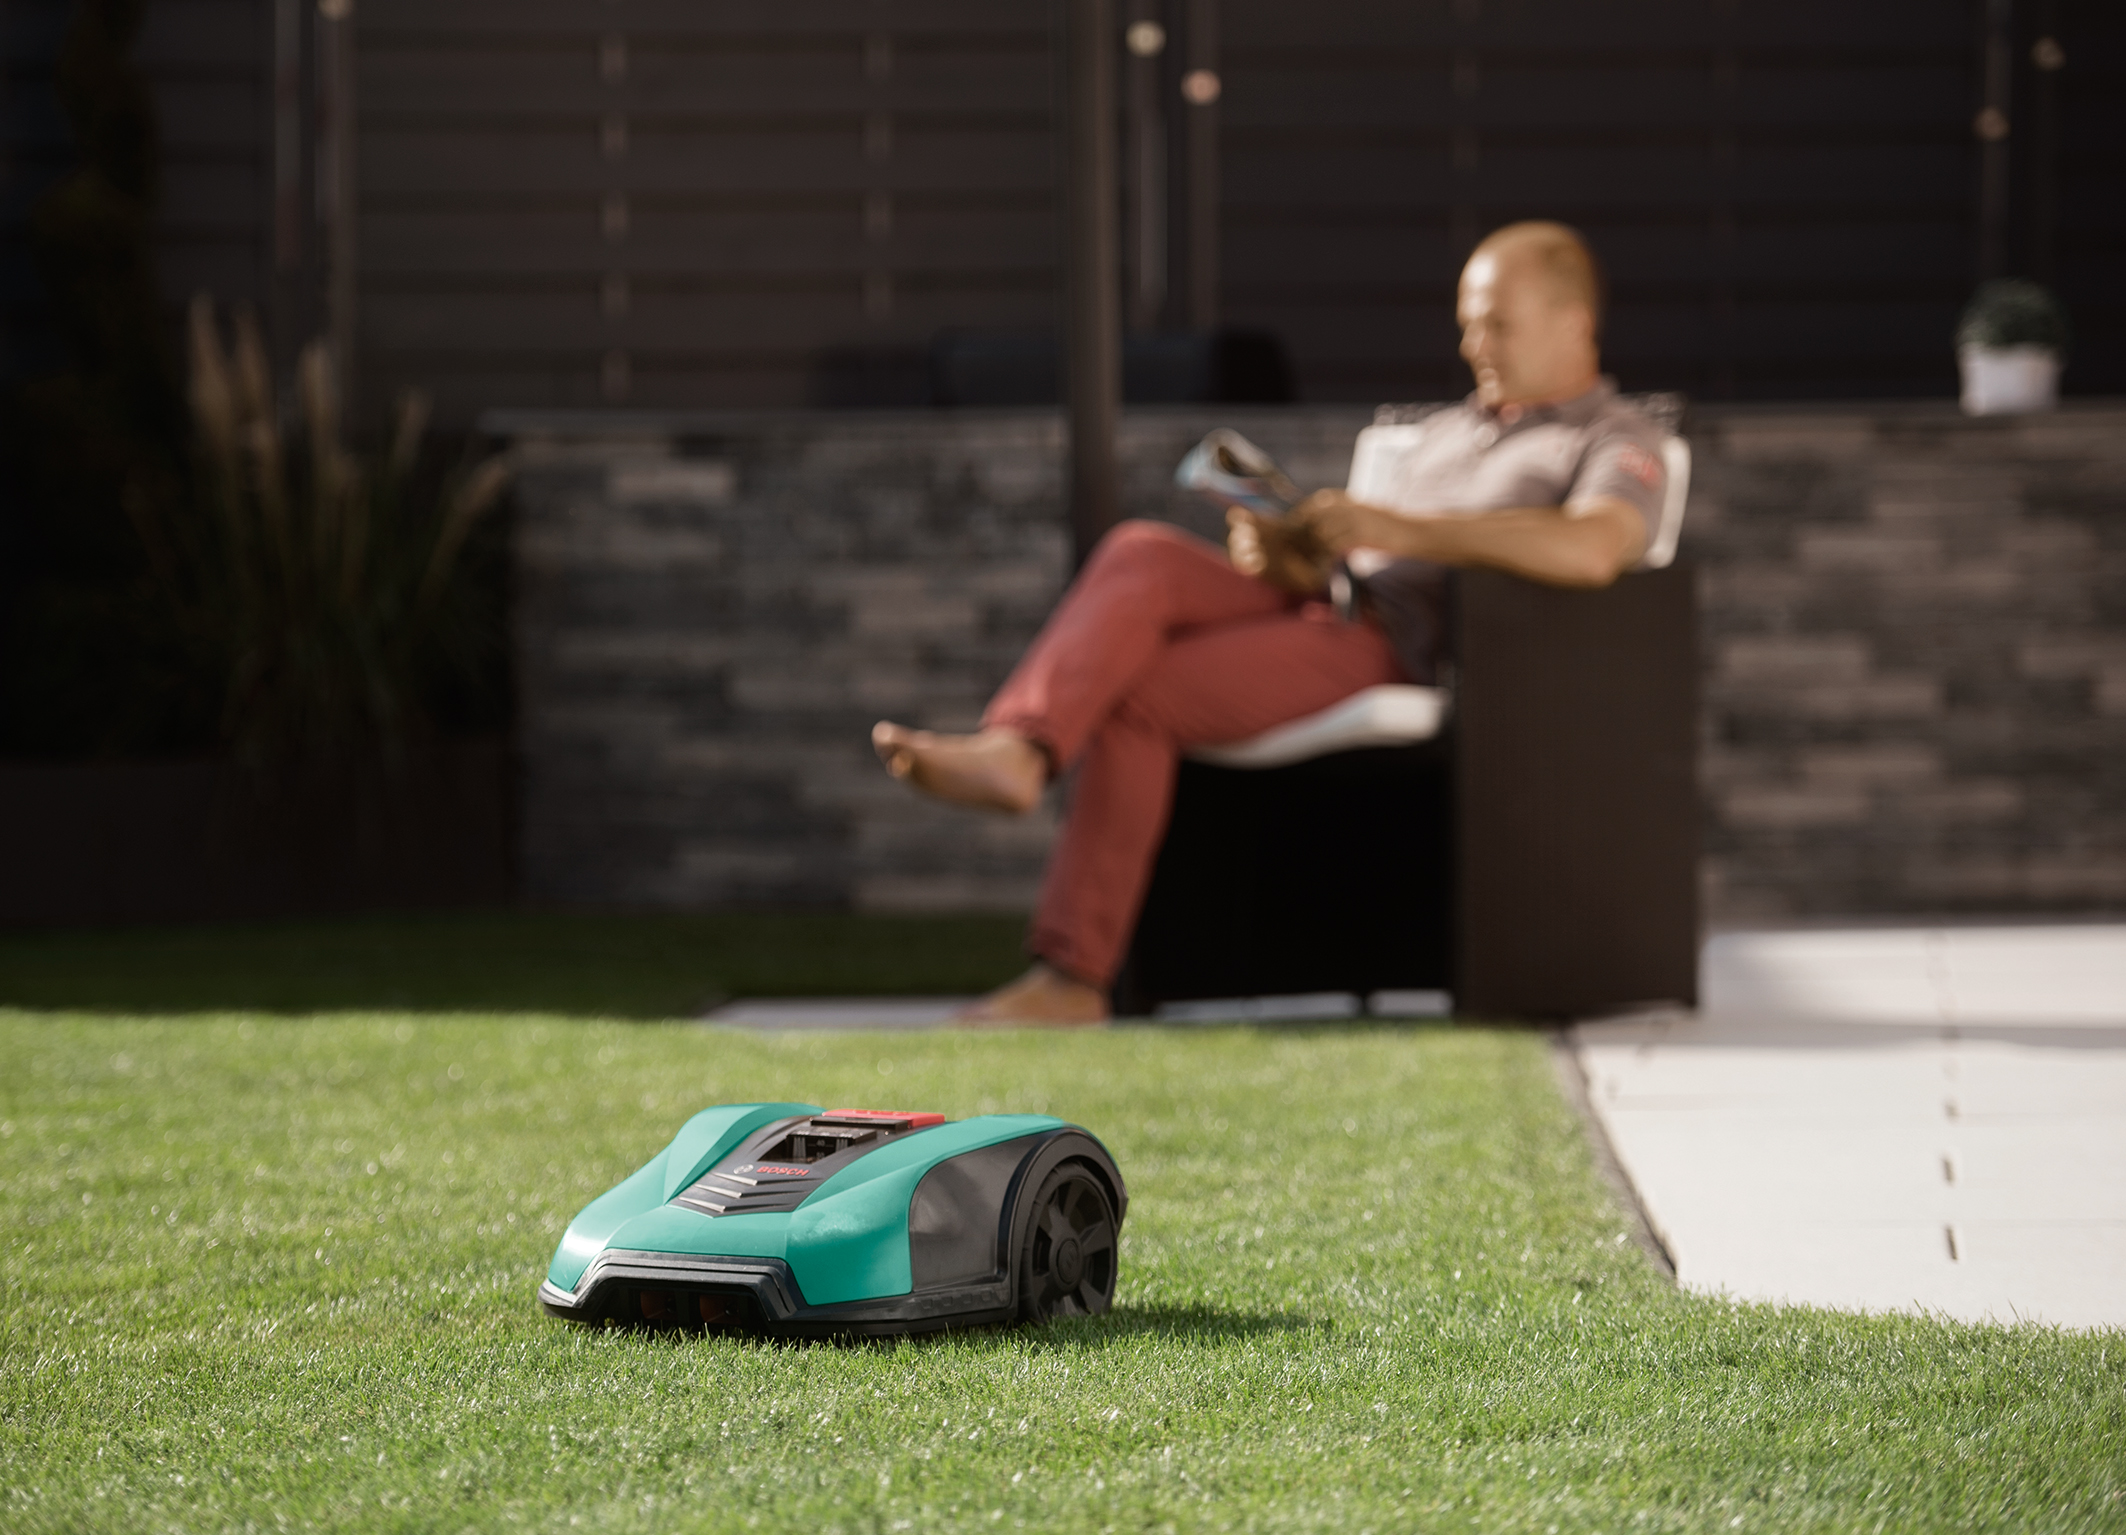 Autonomous lawn care for small to medium gardens: The robotic lawnmowers Indego 400 and Indego 400 Connect